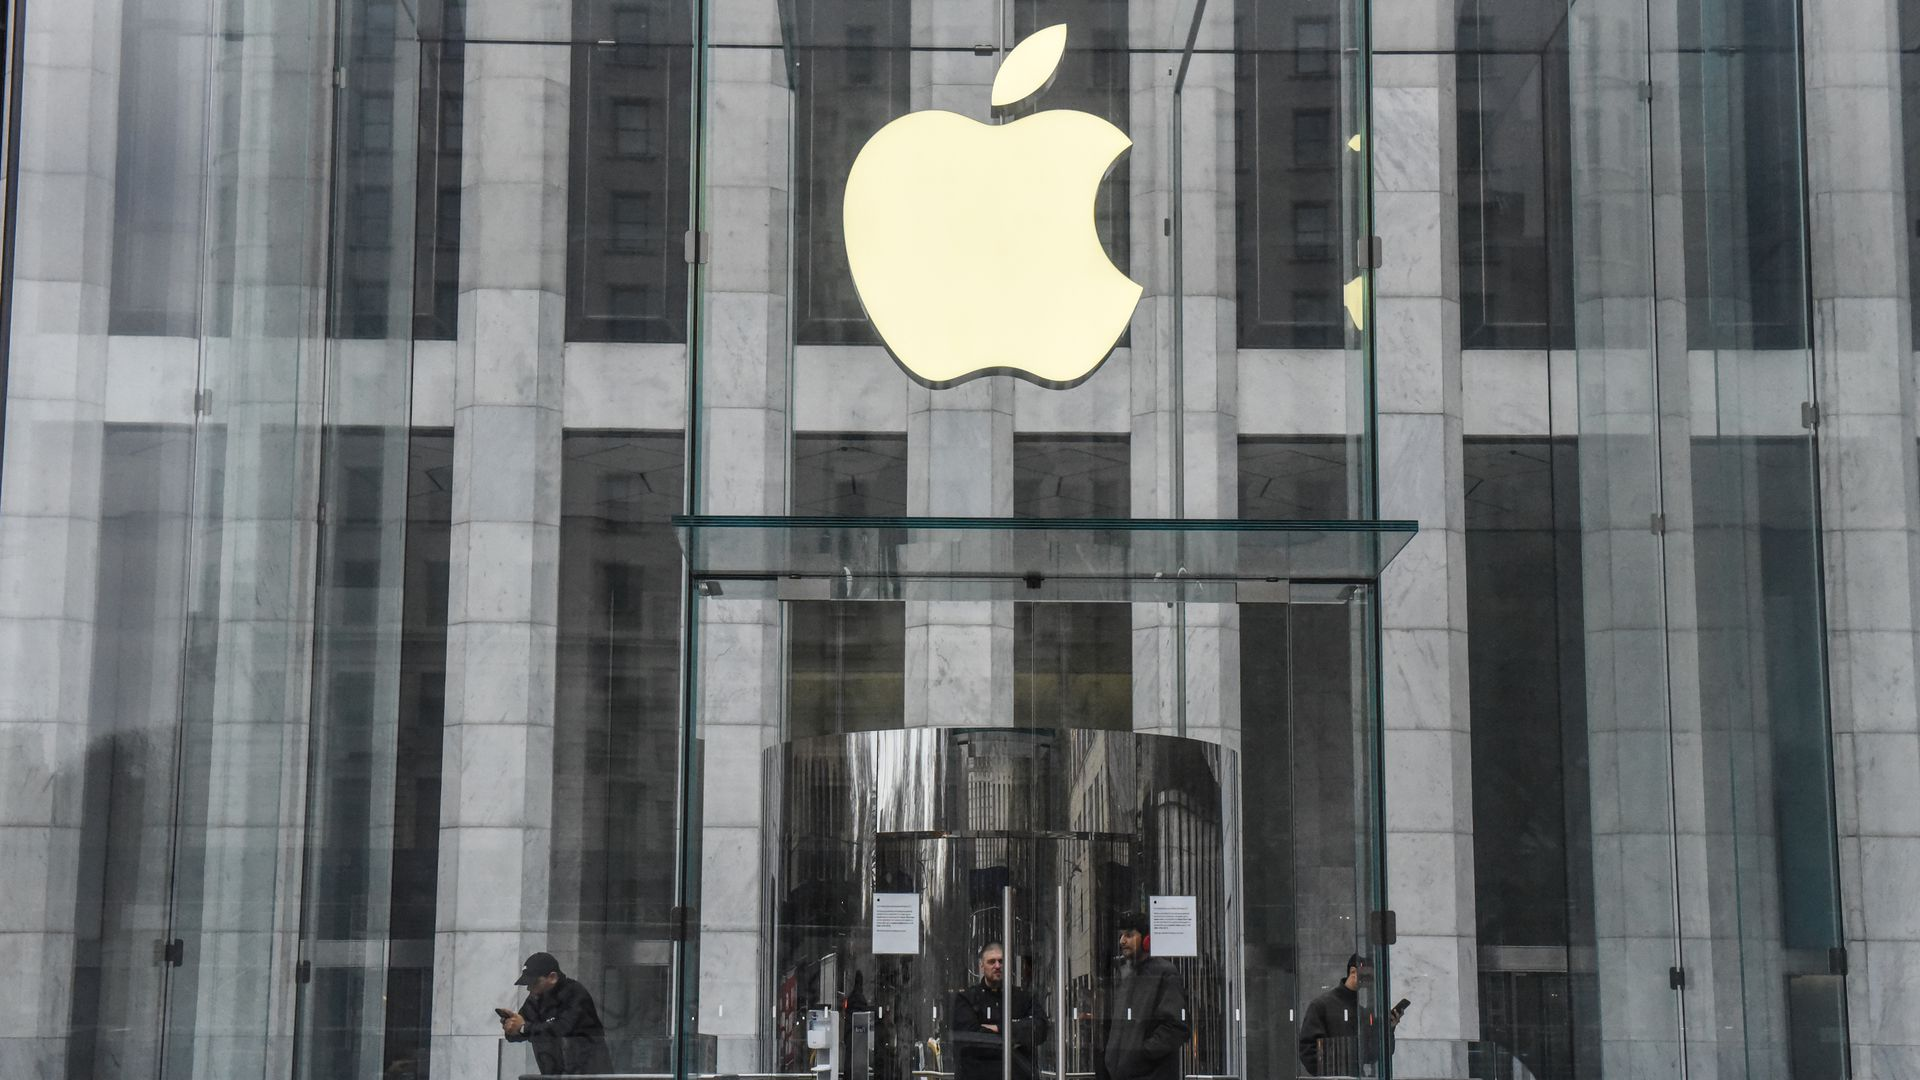 People standing at the entrance of Apple's flagship store in New York City.